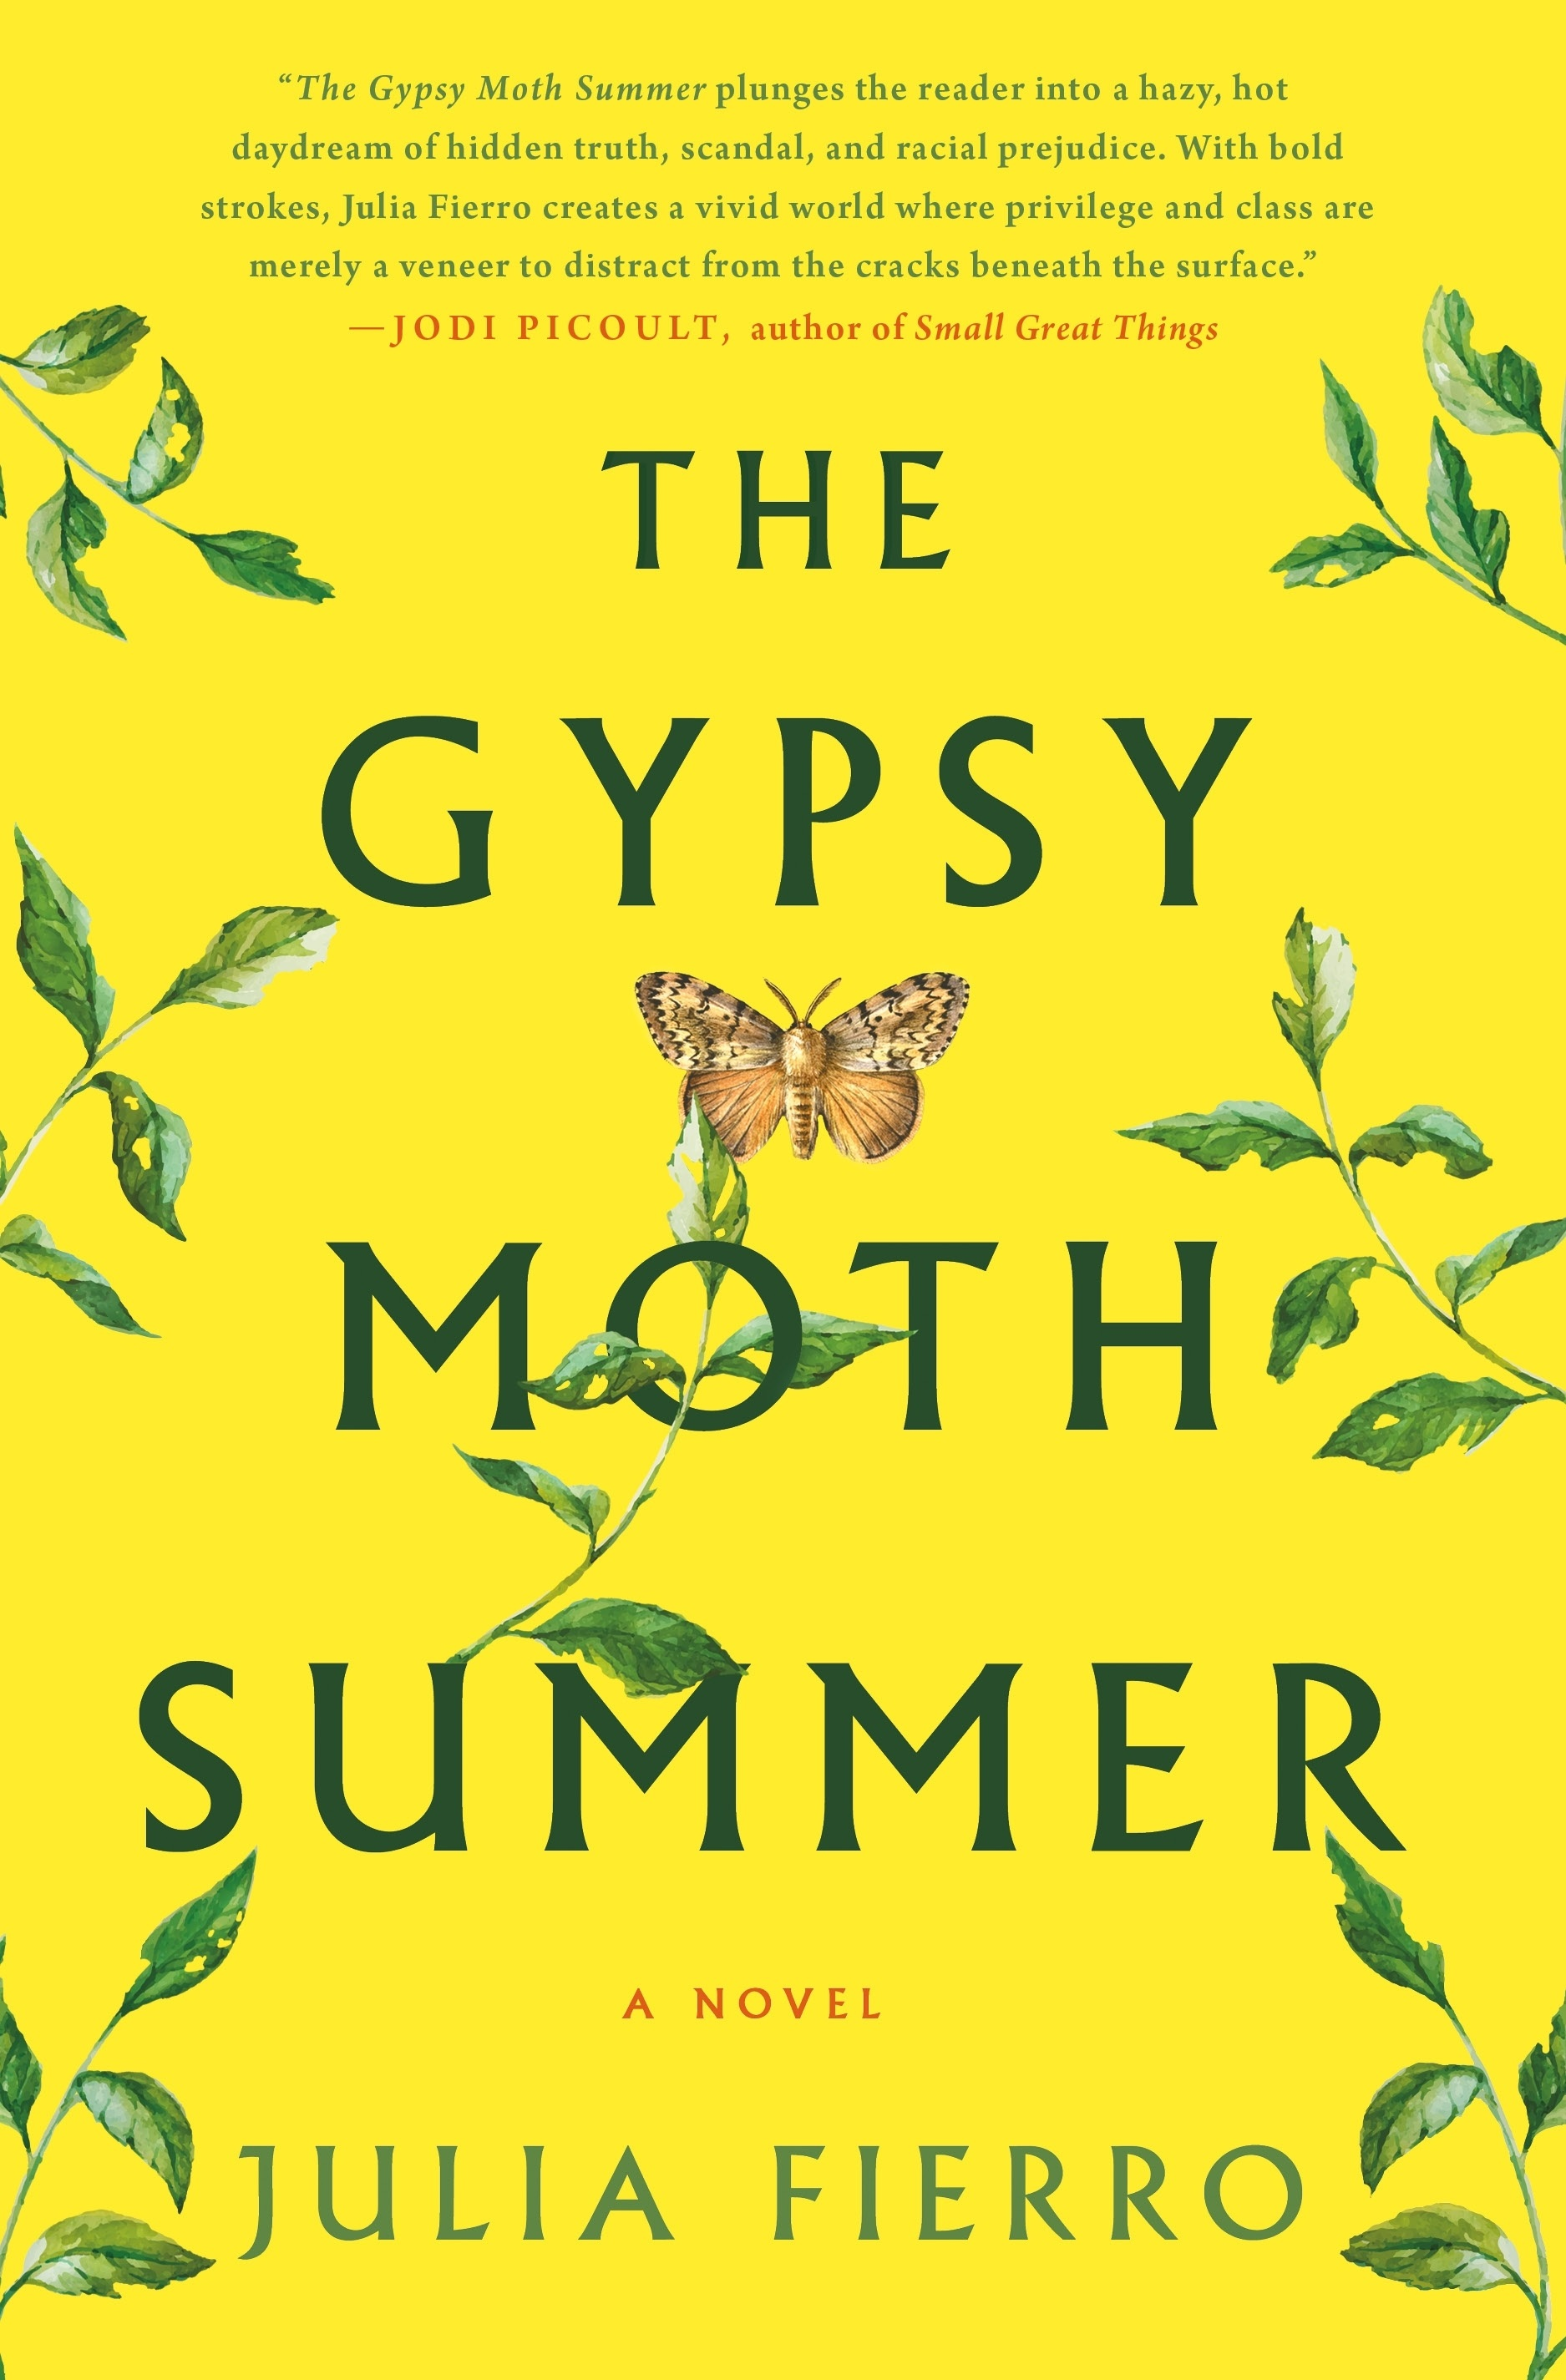 The Gypsy Moth Summer book cover